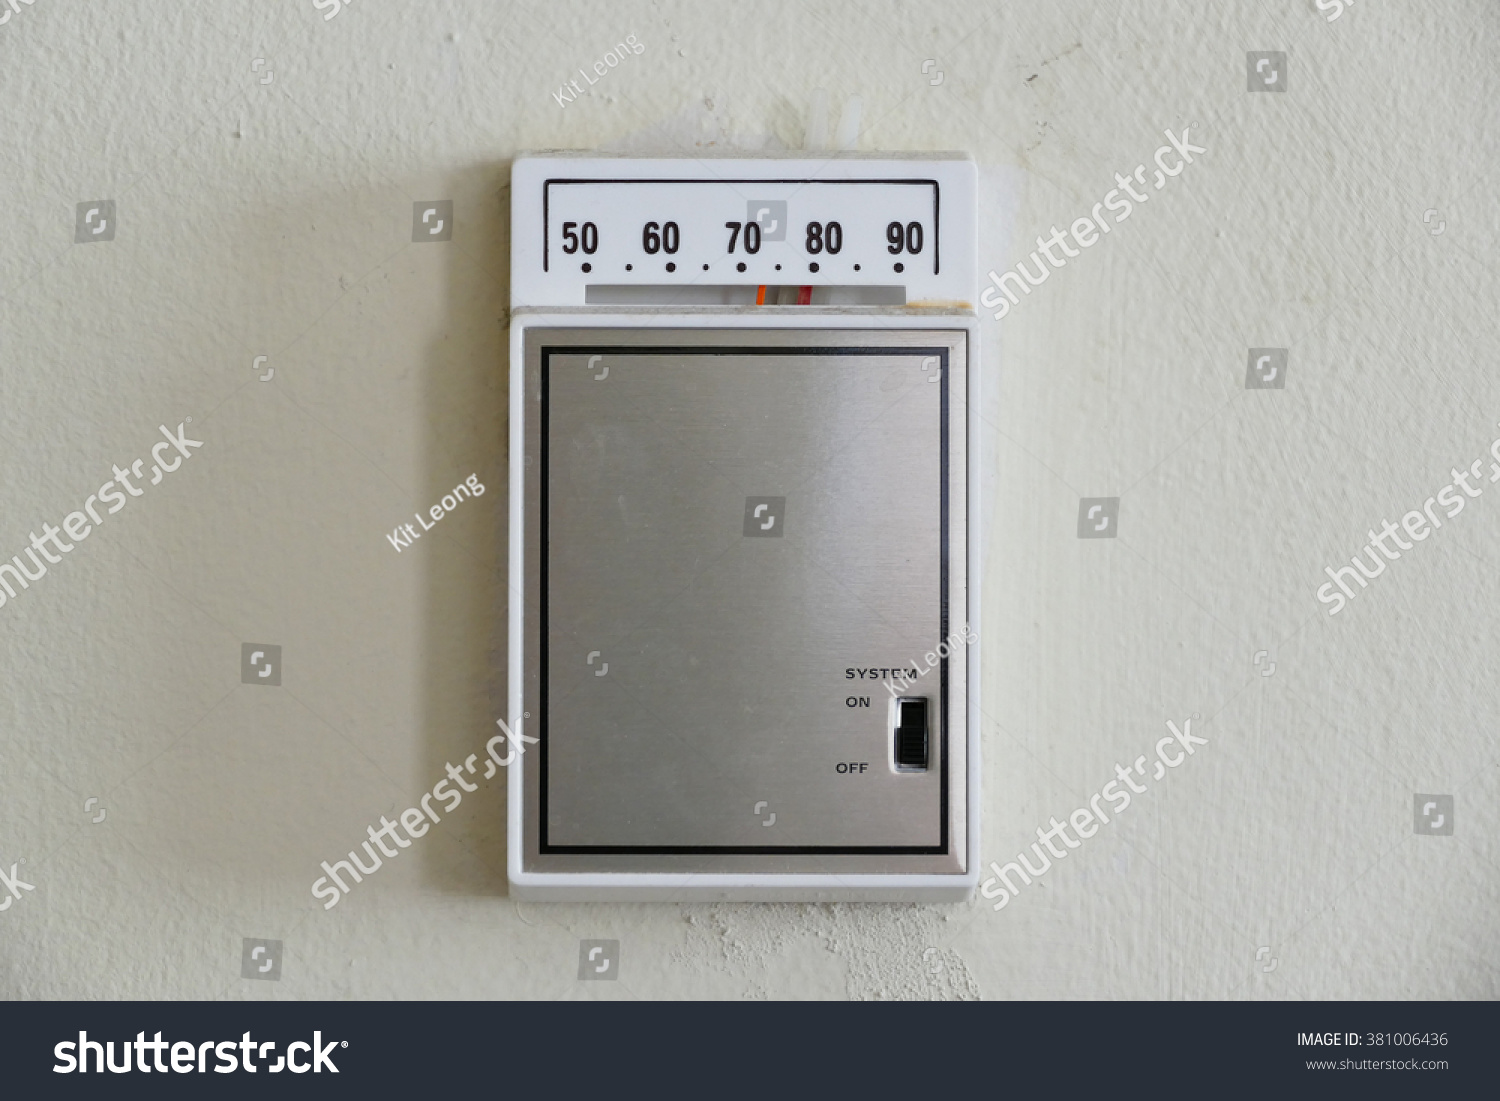 Retro Room Temperature Control Box Thermostat Stock Photo Edit Now On Off Of